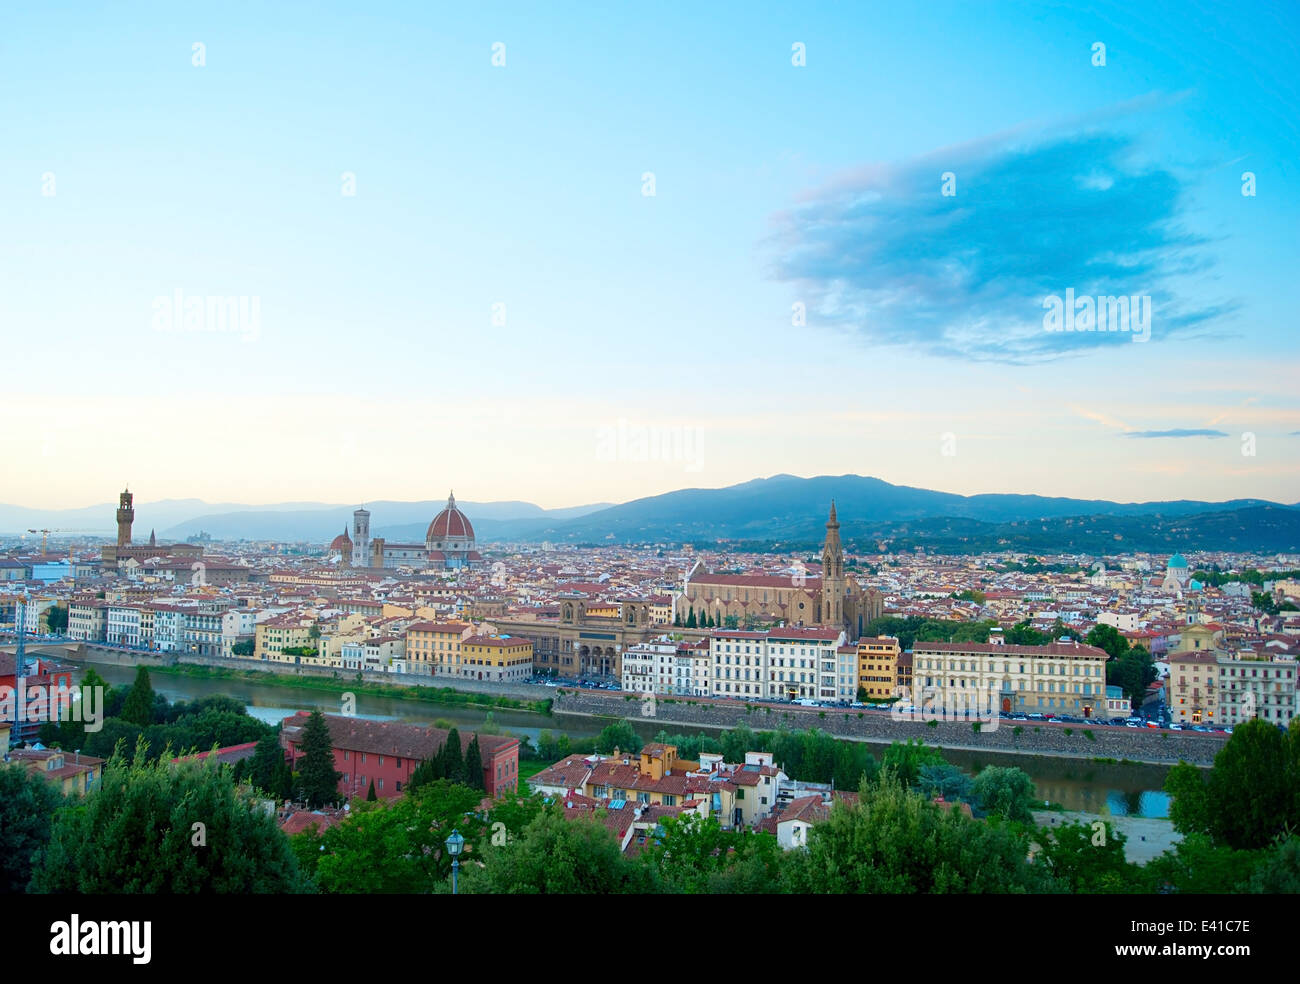 Italian Florence: Cityscape Of Florence At Dusk, View From Piazzale